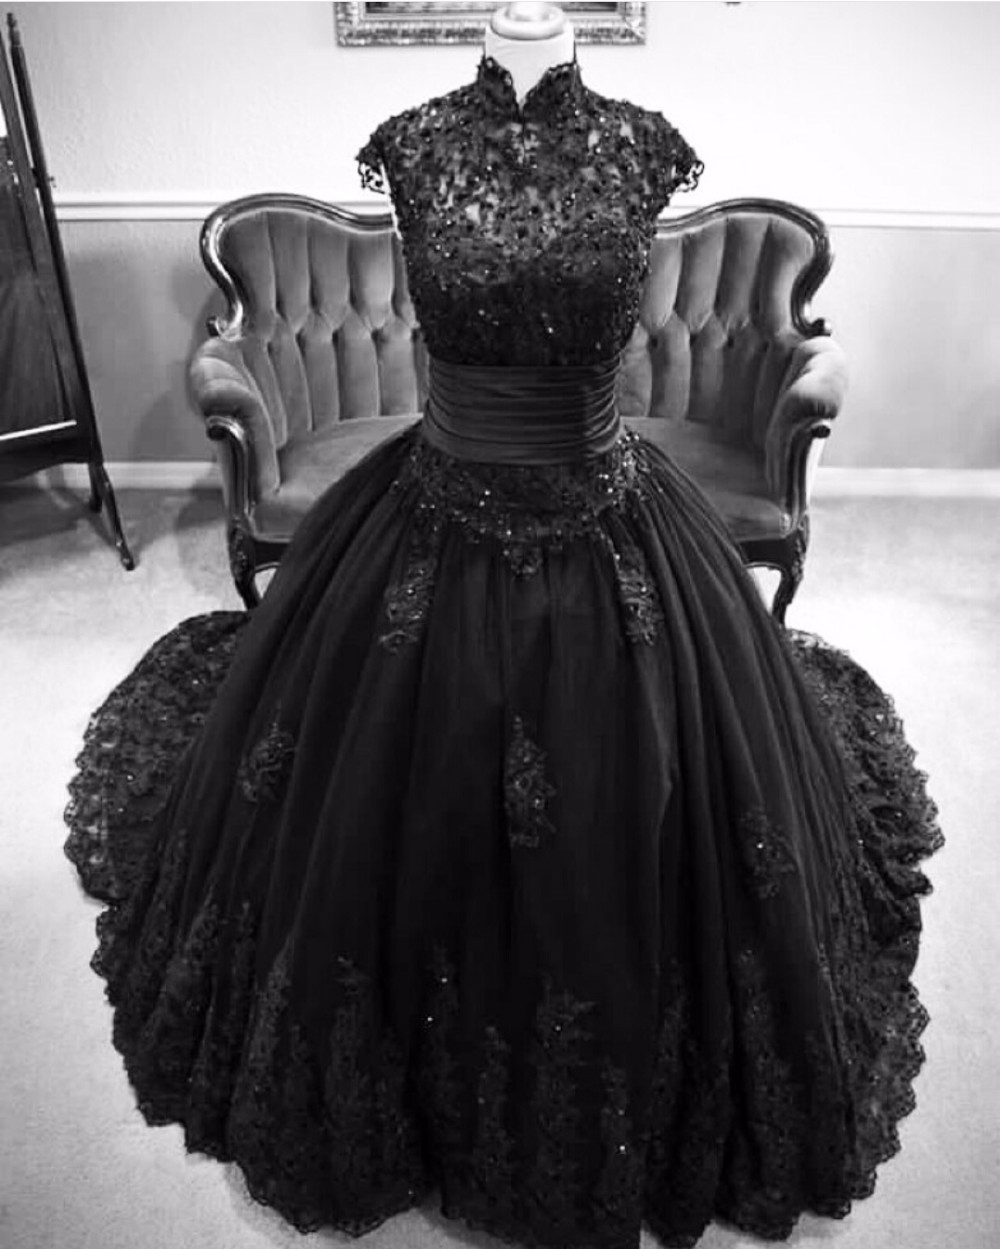 2017 Gothic Wedding Dresses Halloween Victorian Bridal: Vintage Black Gothic Wedding Dresses 2017 Cap Sleeves